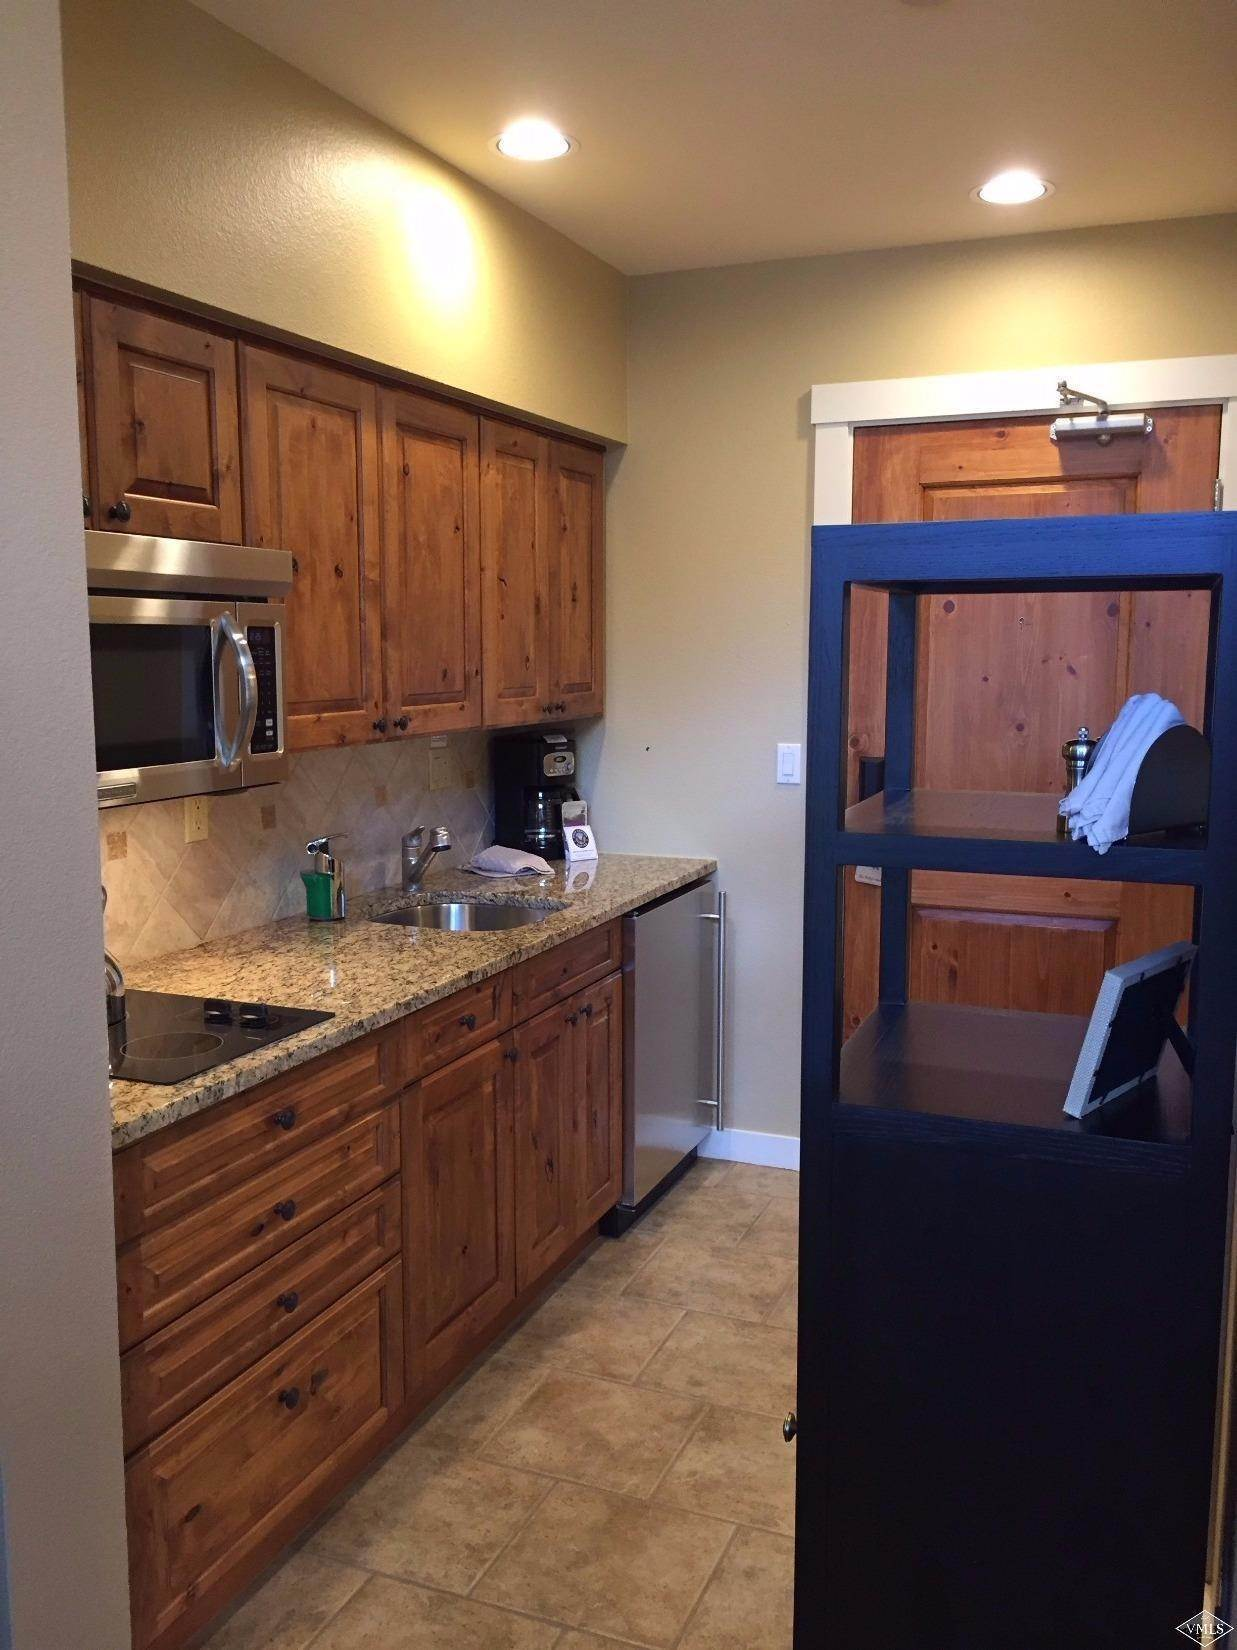 16. fractional ownership prop for Active at 63 Avondale Lane Beaver Creek, Colorado 81620 United States